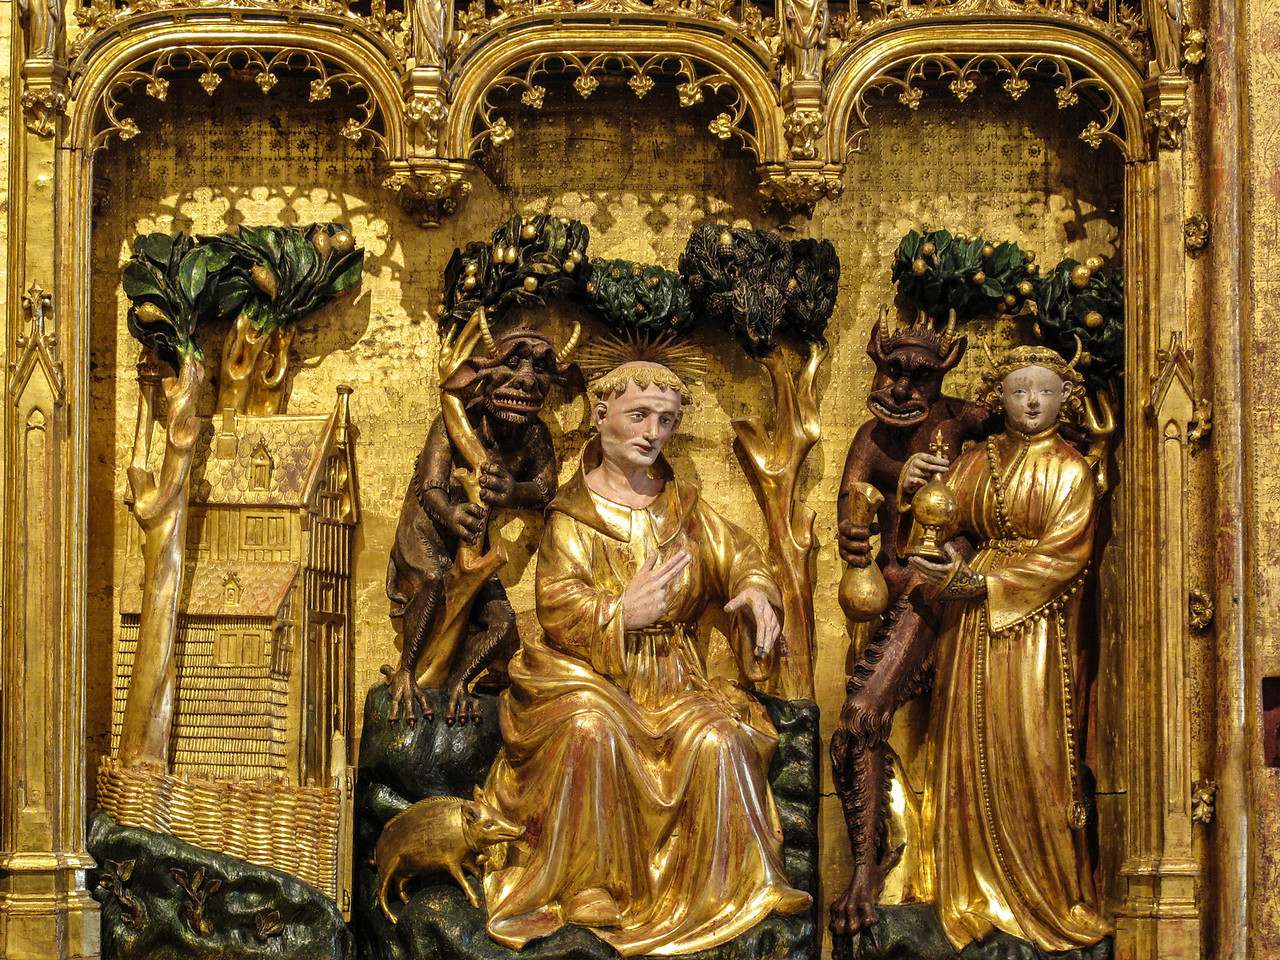 Dijon Beaux Arts Museum - Altarpiece of Saints and Martyrs (1390s) - The Temptation of Saint Anthony